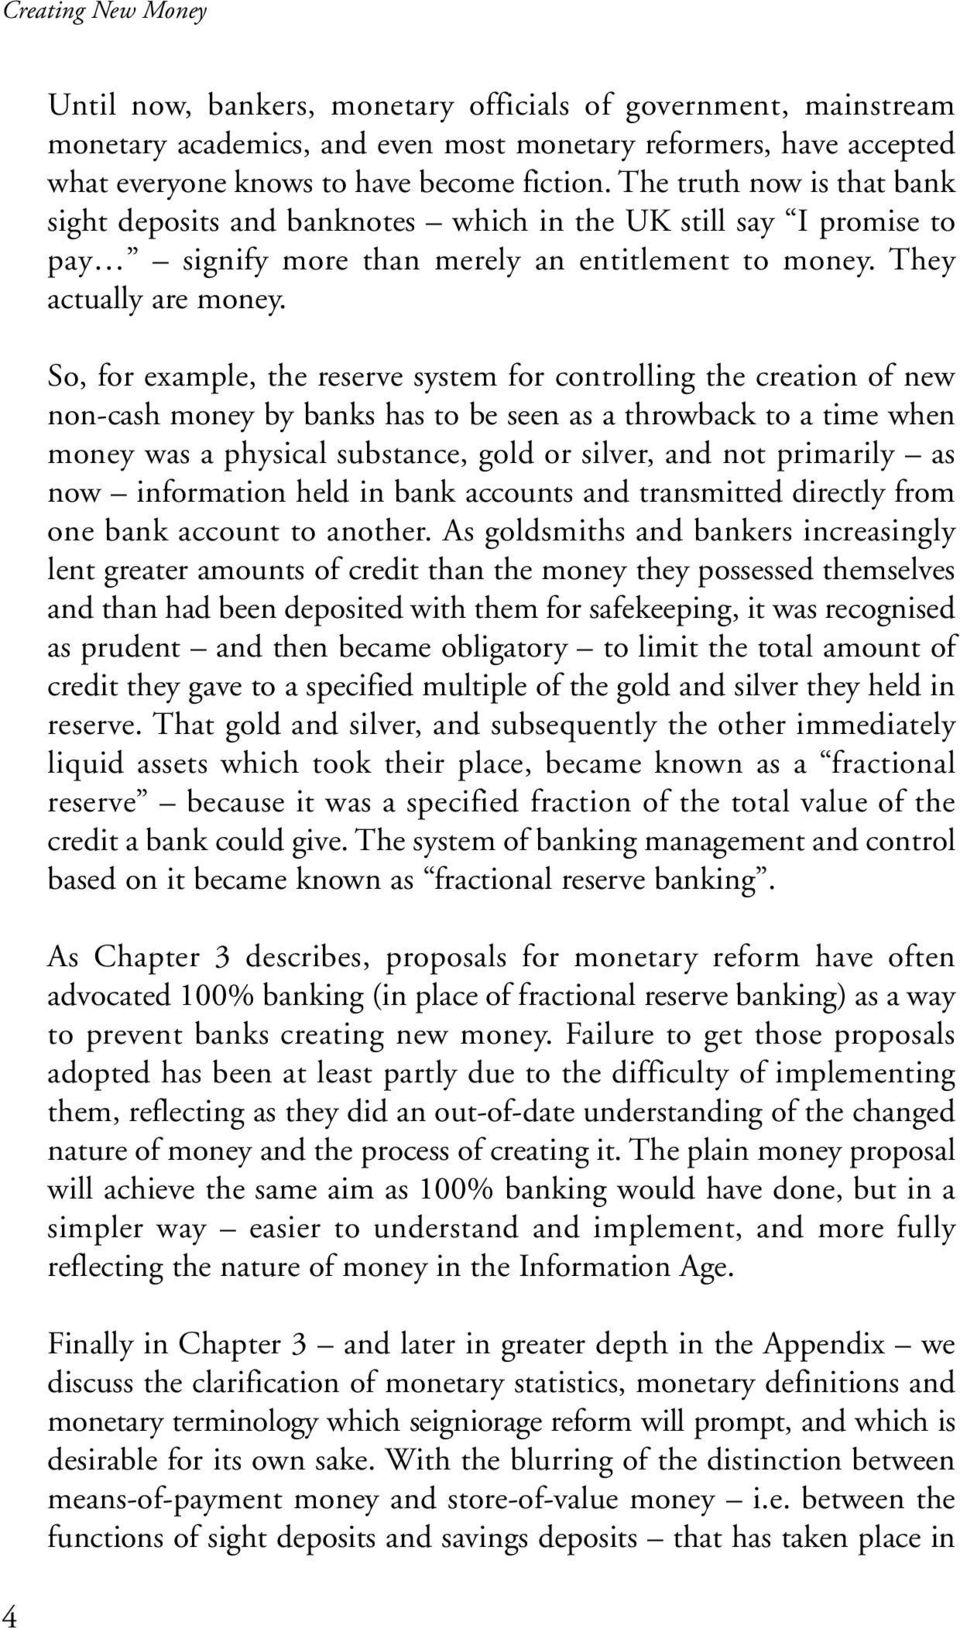 So, for example, the reserve system for controlling the creation of new non-cash money by banks has to be seen as a throwback to a time when money was a physical substance, gold or silver, and not